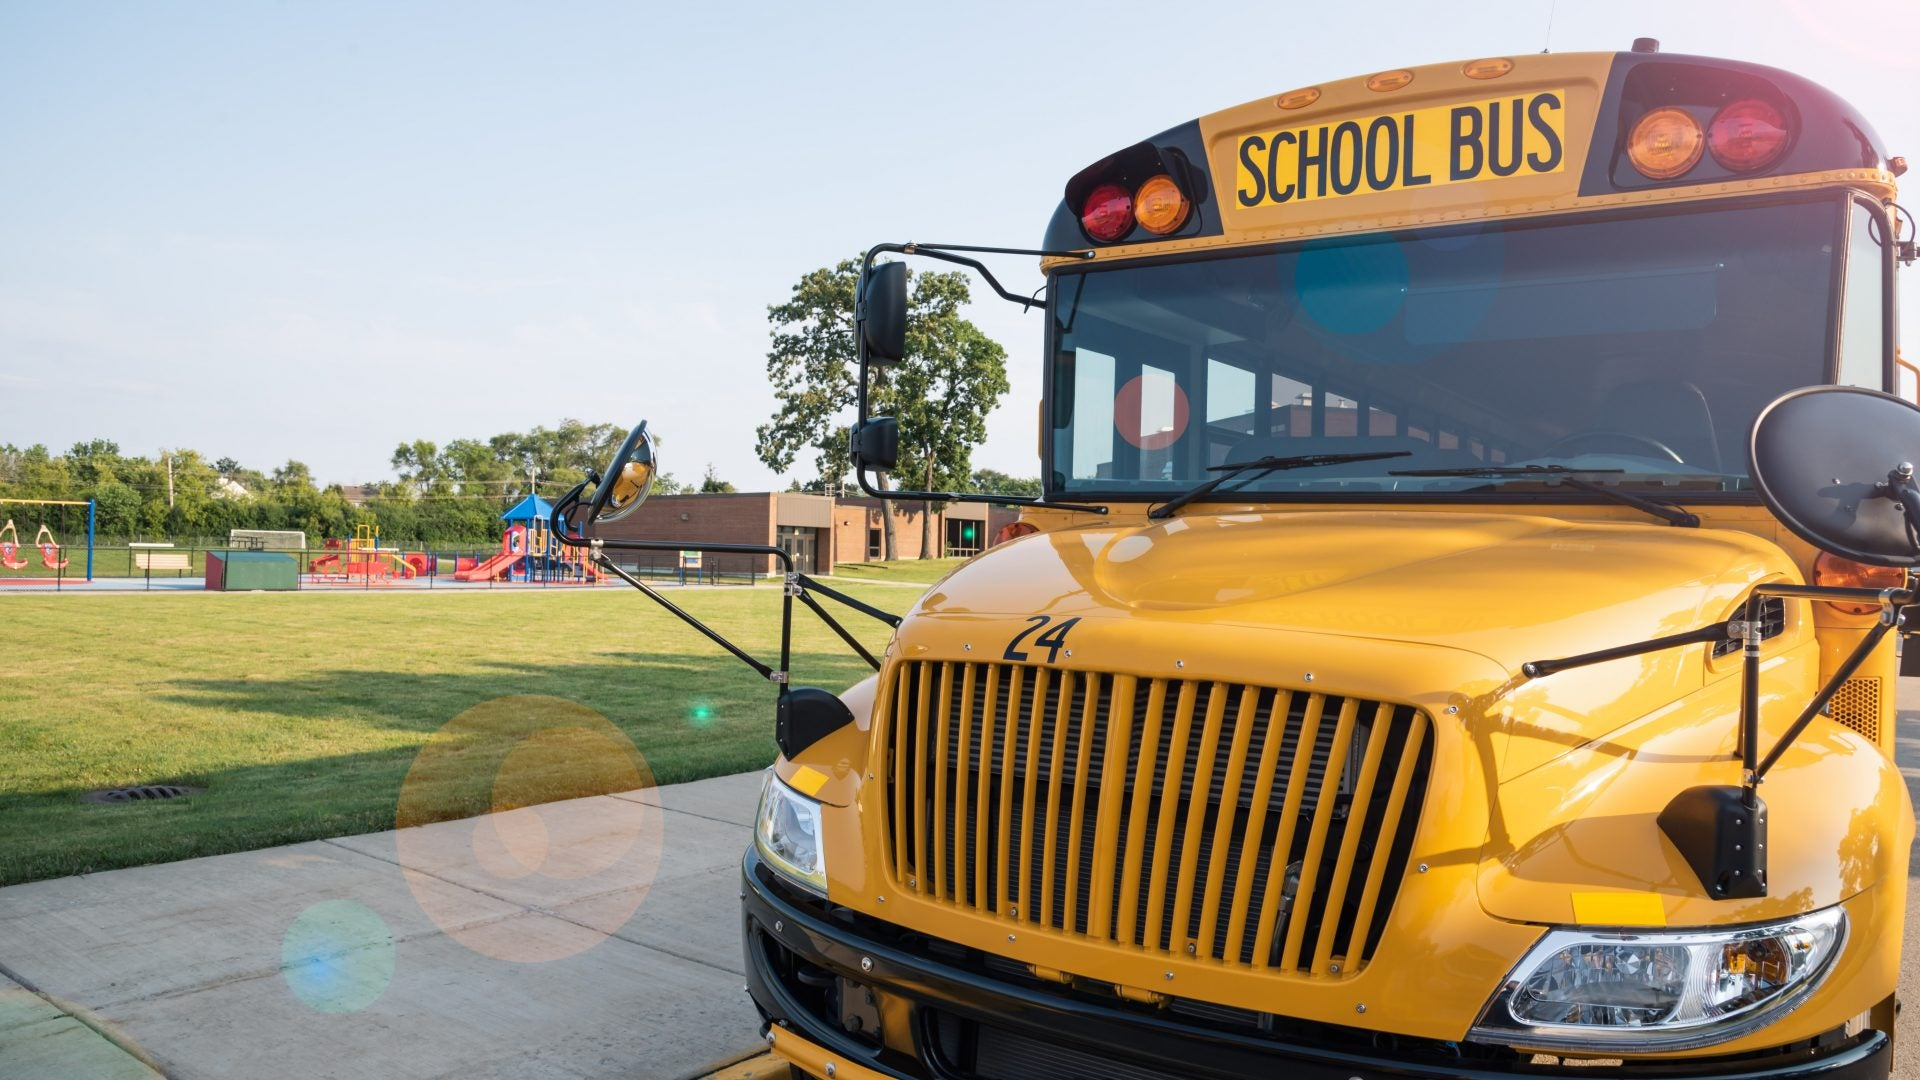 Racist Attack On School Bus Leads To Hate Crime Charge For 11-Year-Old White Girl